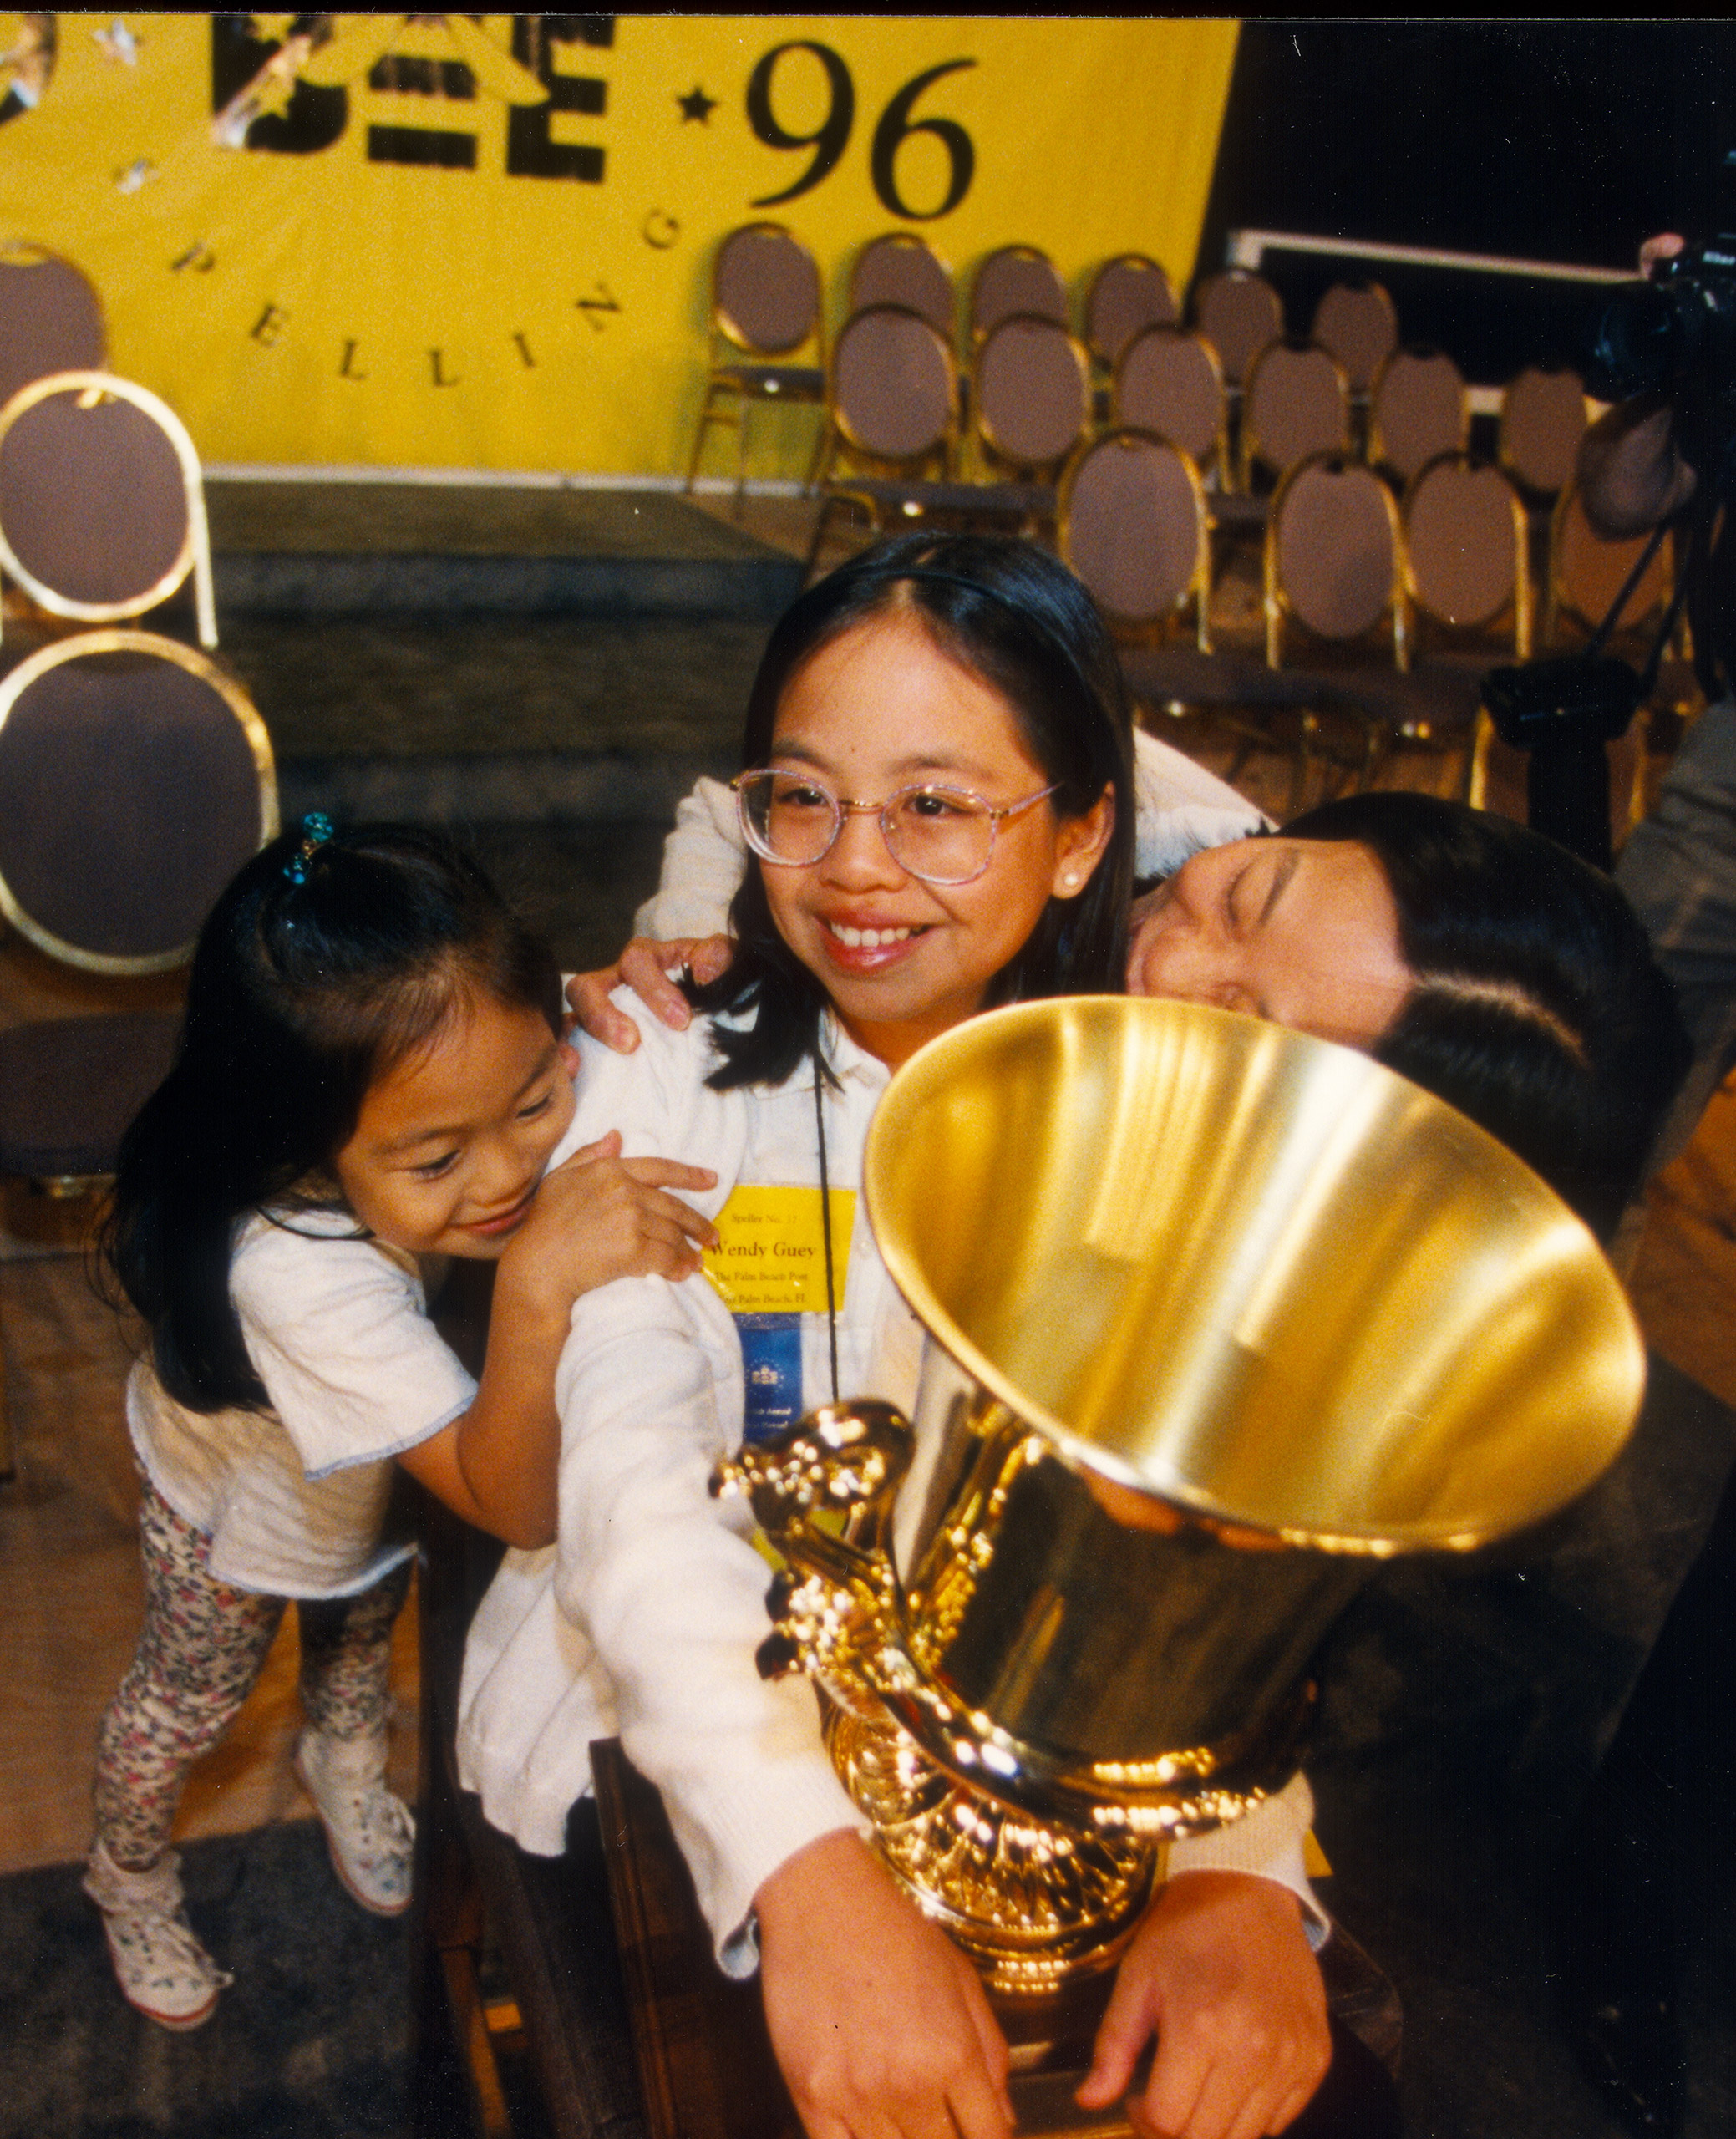 1996 Scripps National Spelling Bee champion Wendy Guey.